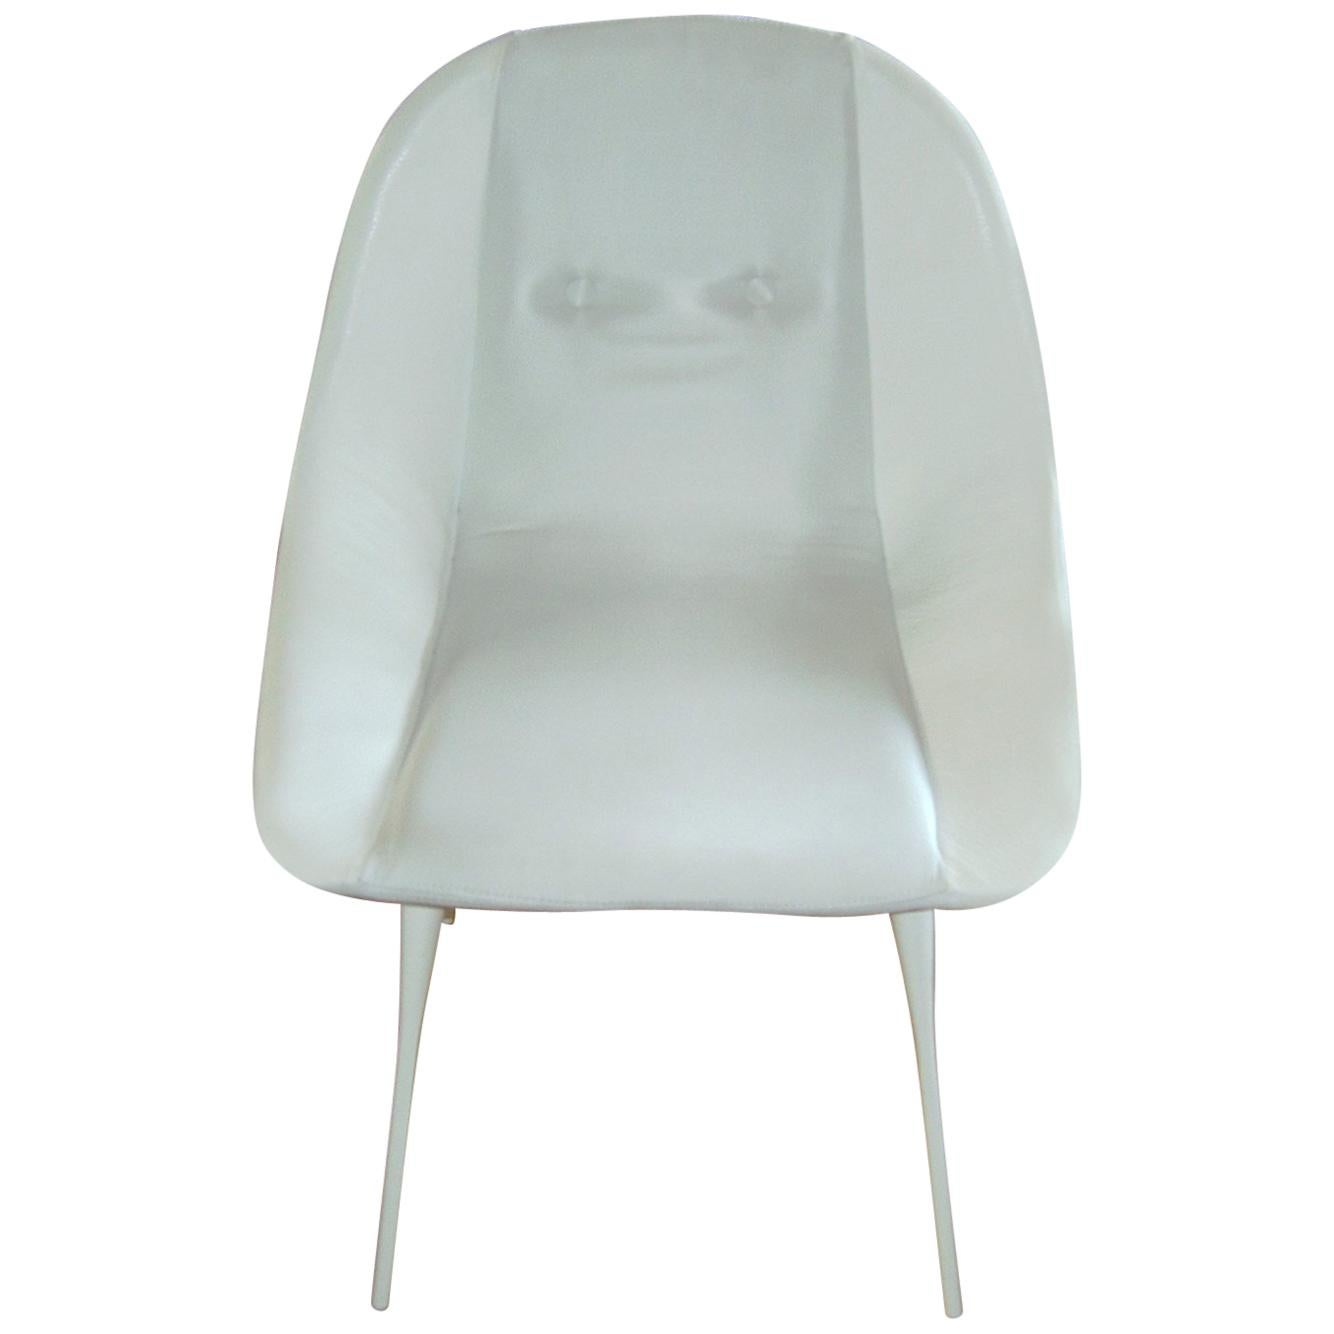 Nube Italia Fency Dinig Chair in White by Marco Corti